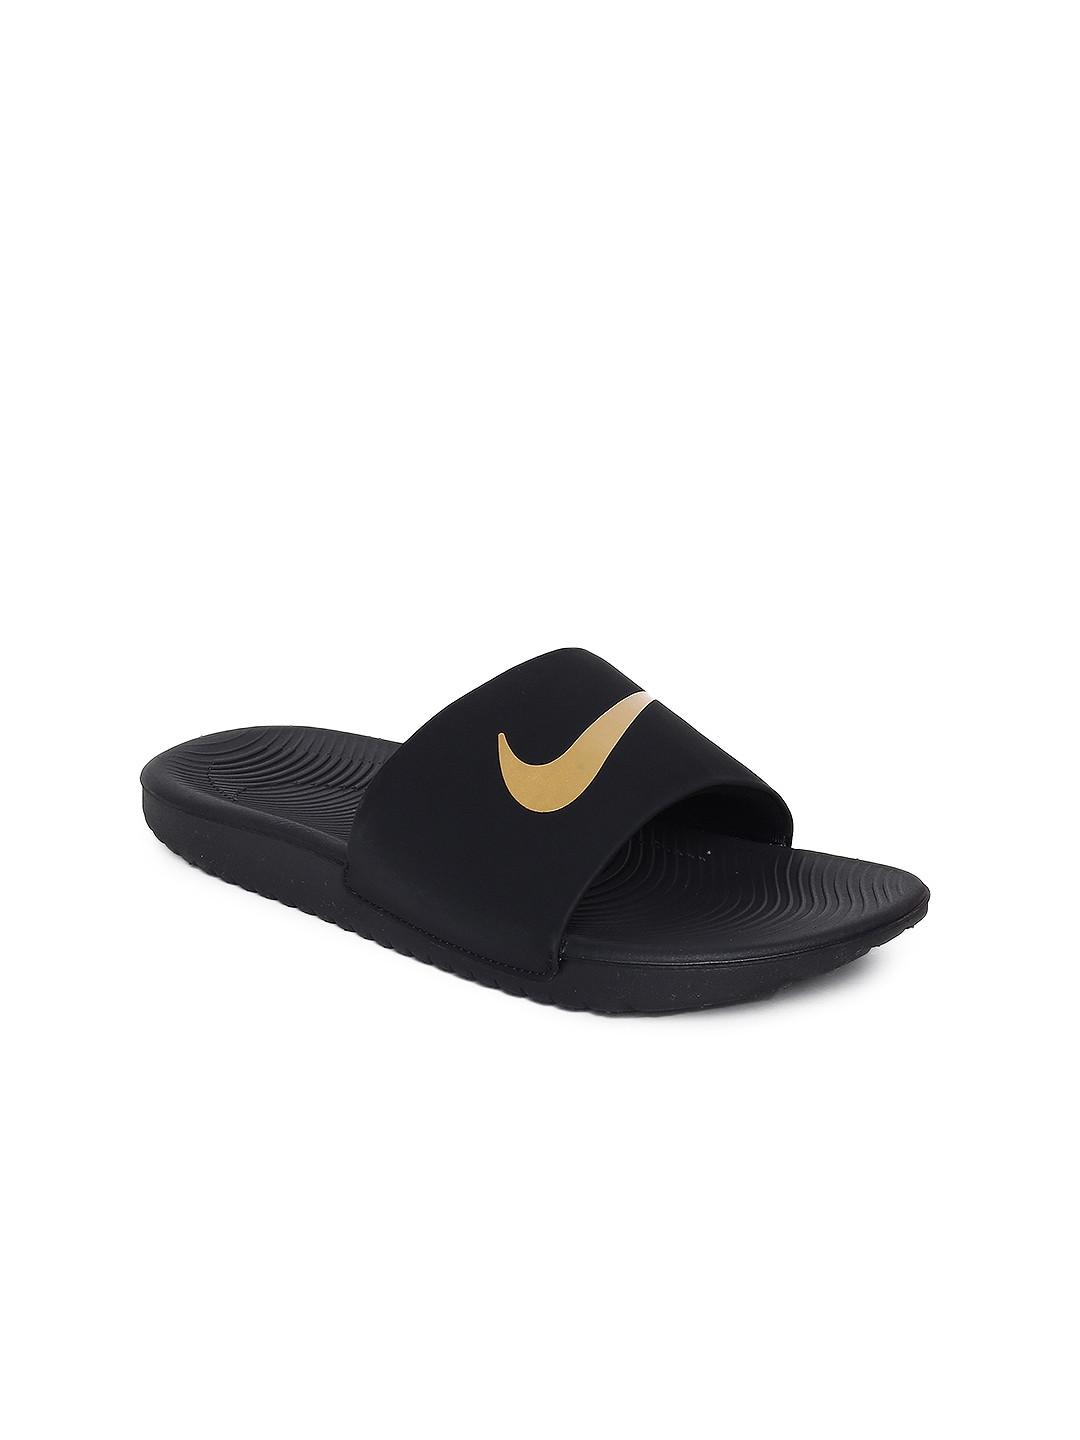 01985b2de971 Buy Nike Boys Black Solid Sliders NIKE KAWA SLIDE (GS PS) - Flip ...